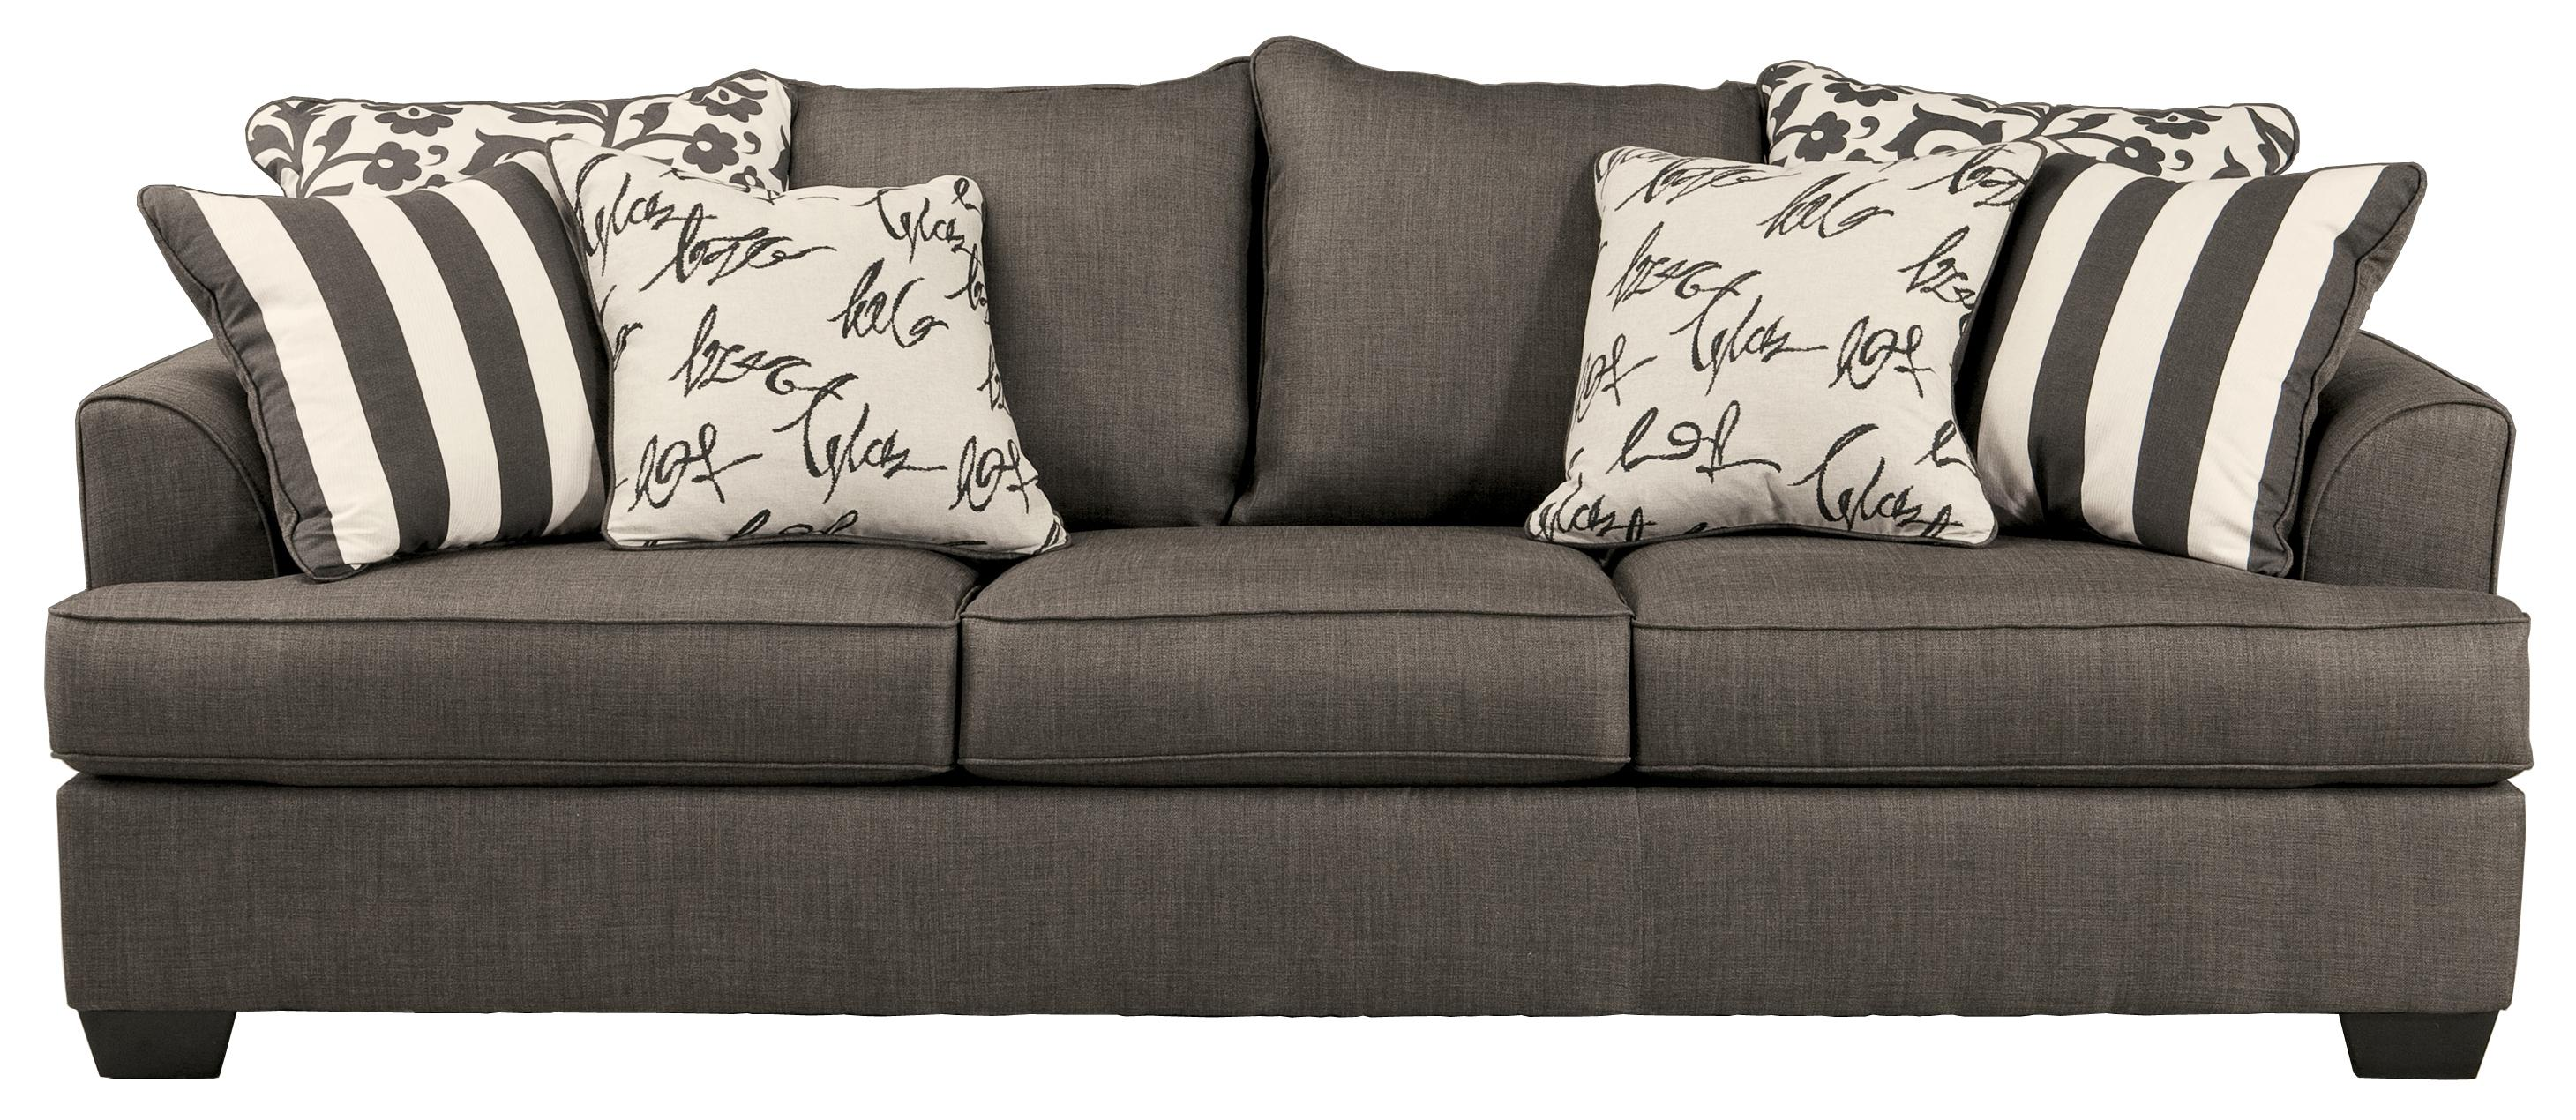 Signature Design by Ashley Levon Charcoal Sofa with Scatterback